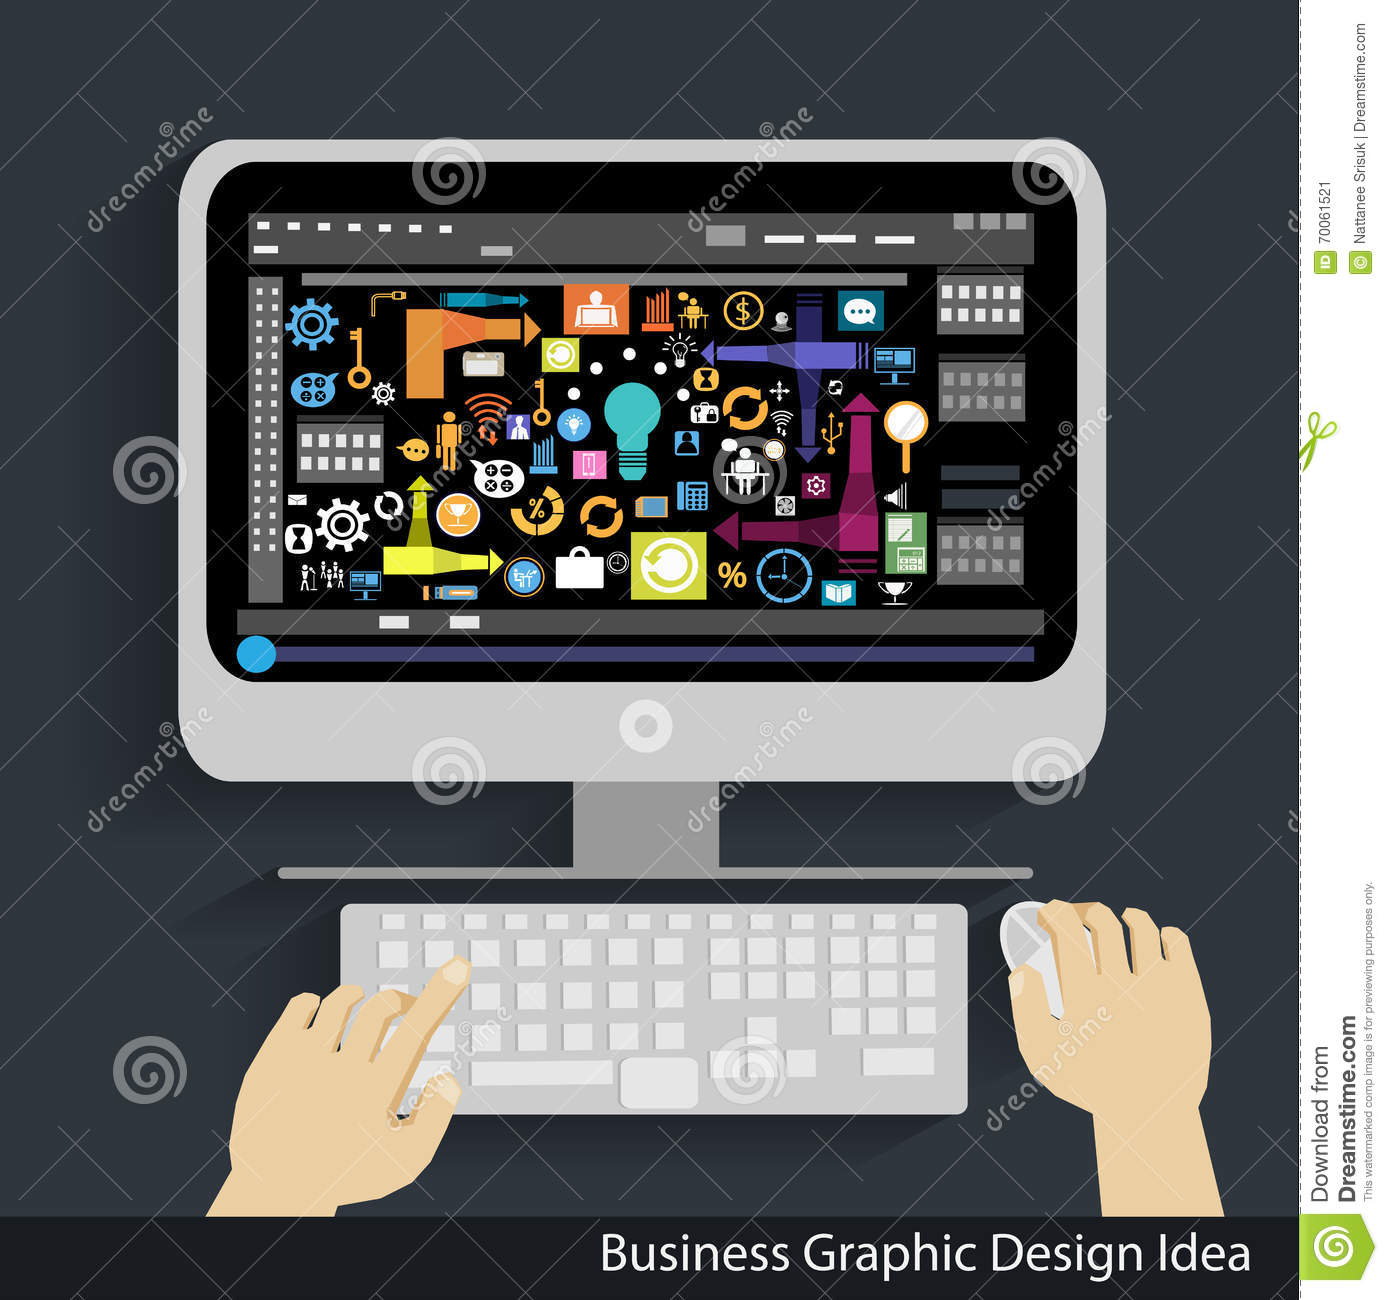 business ideas graphic design business ideas designer business